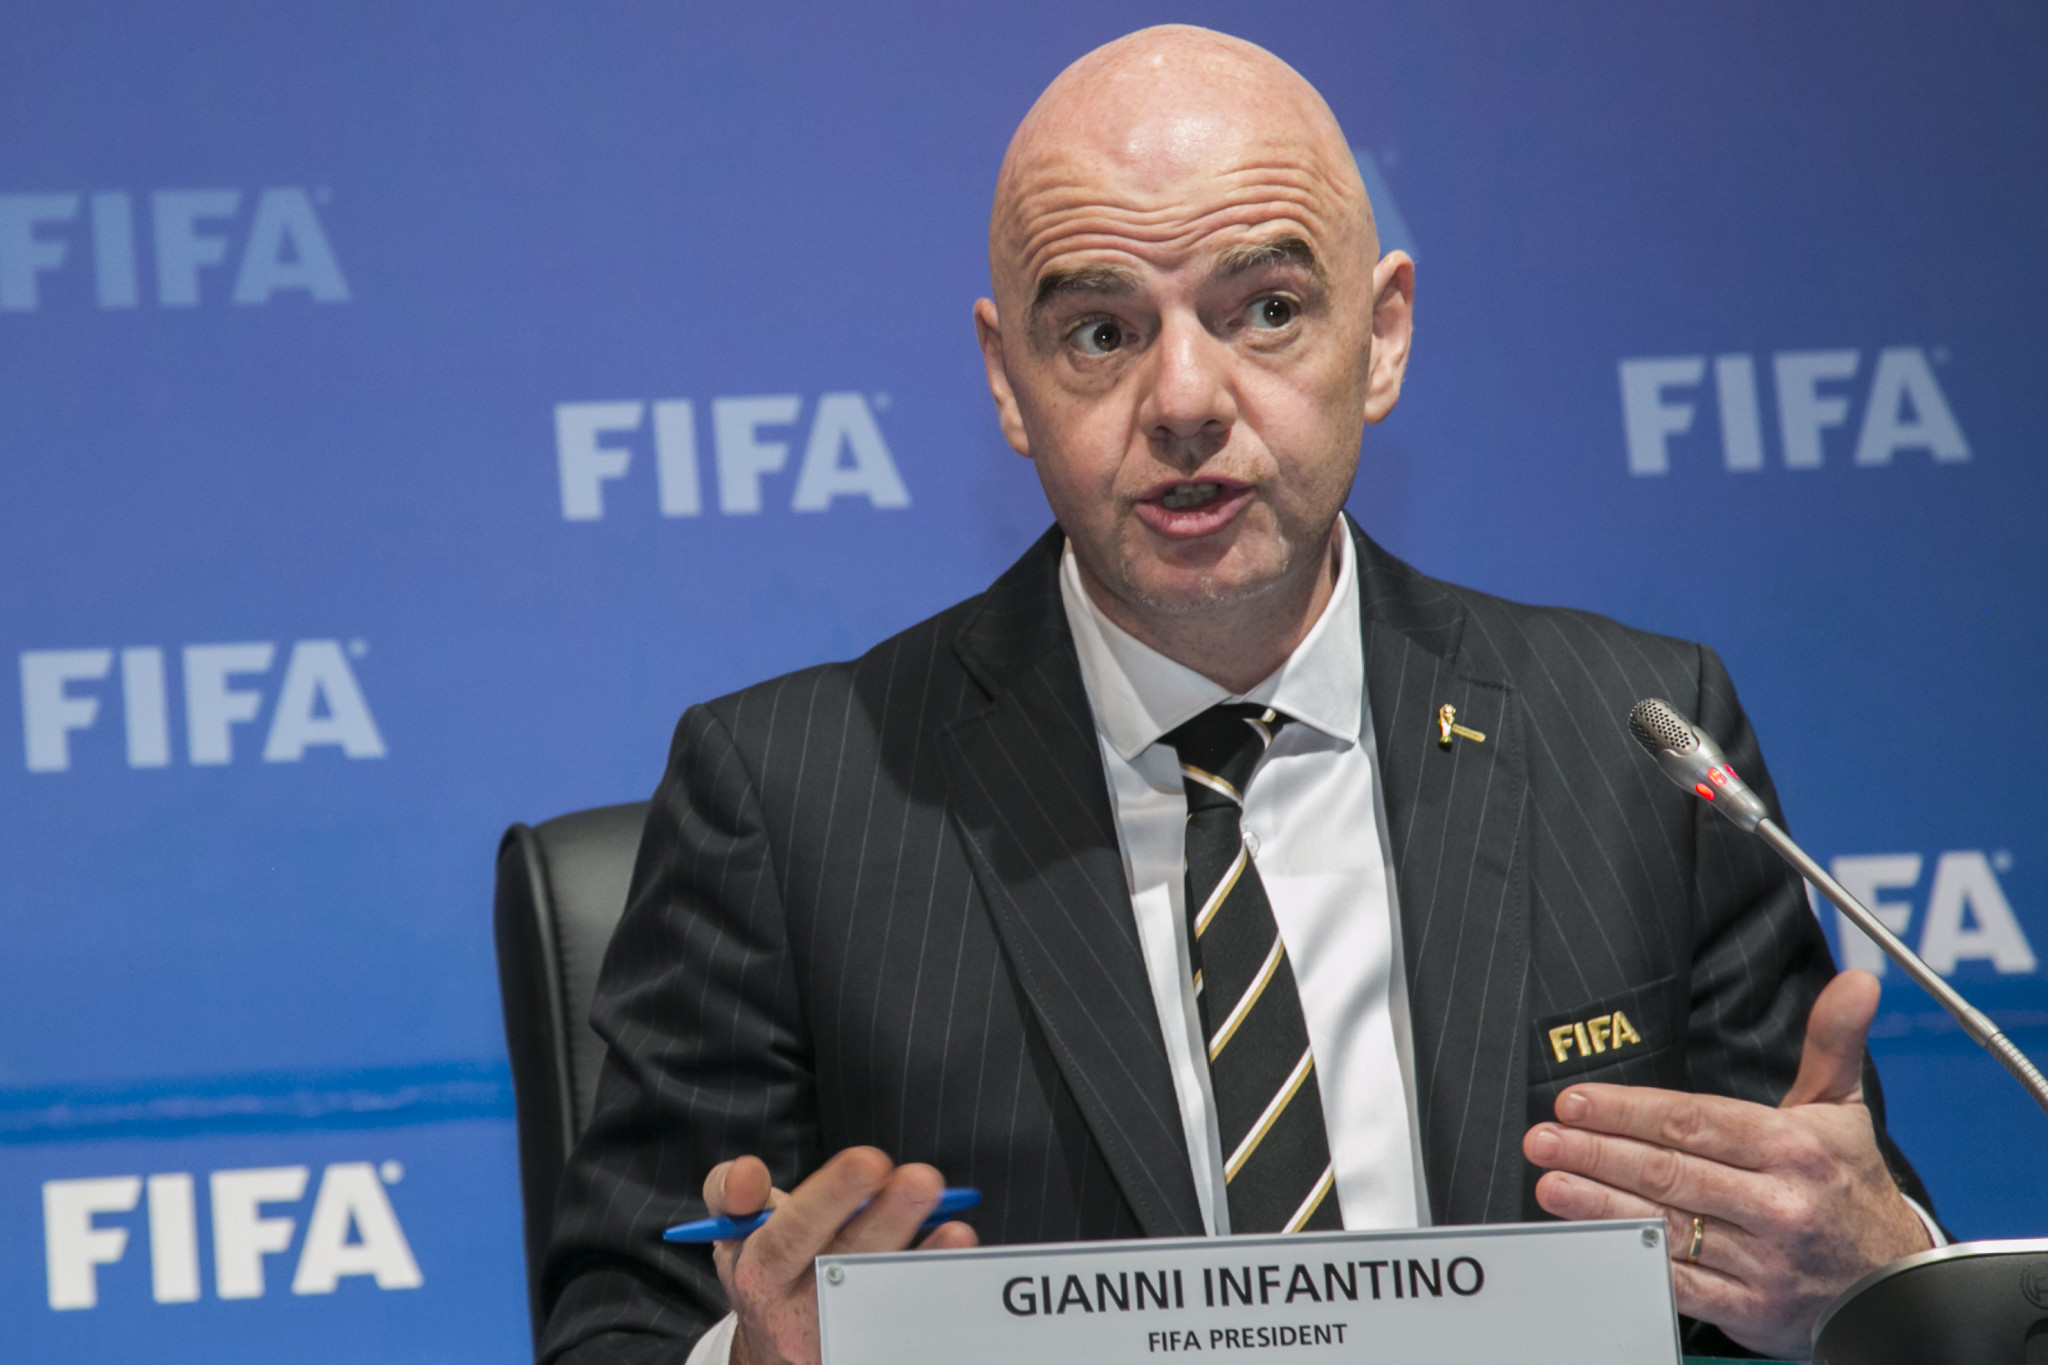 FIFA President Gianni Infantino has warned players against competing in any unauthorised competitions ©Getty Images